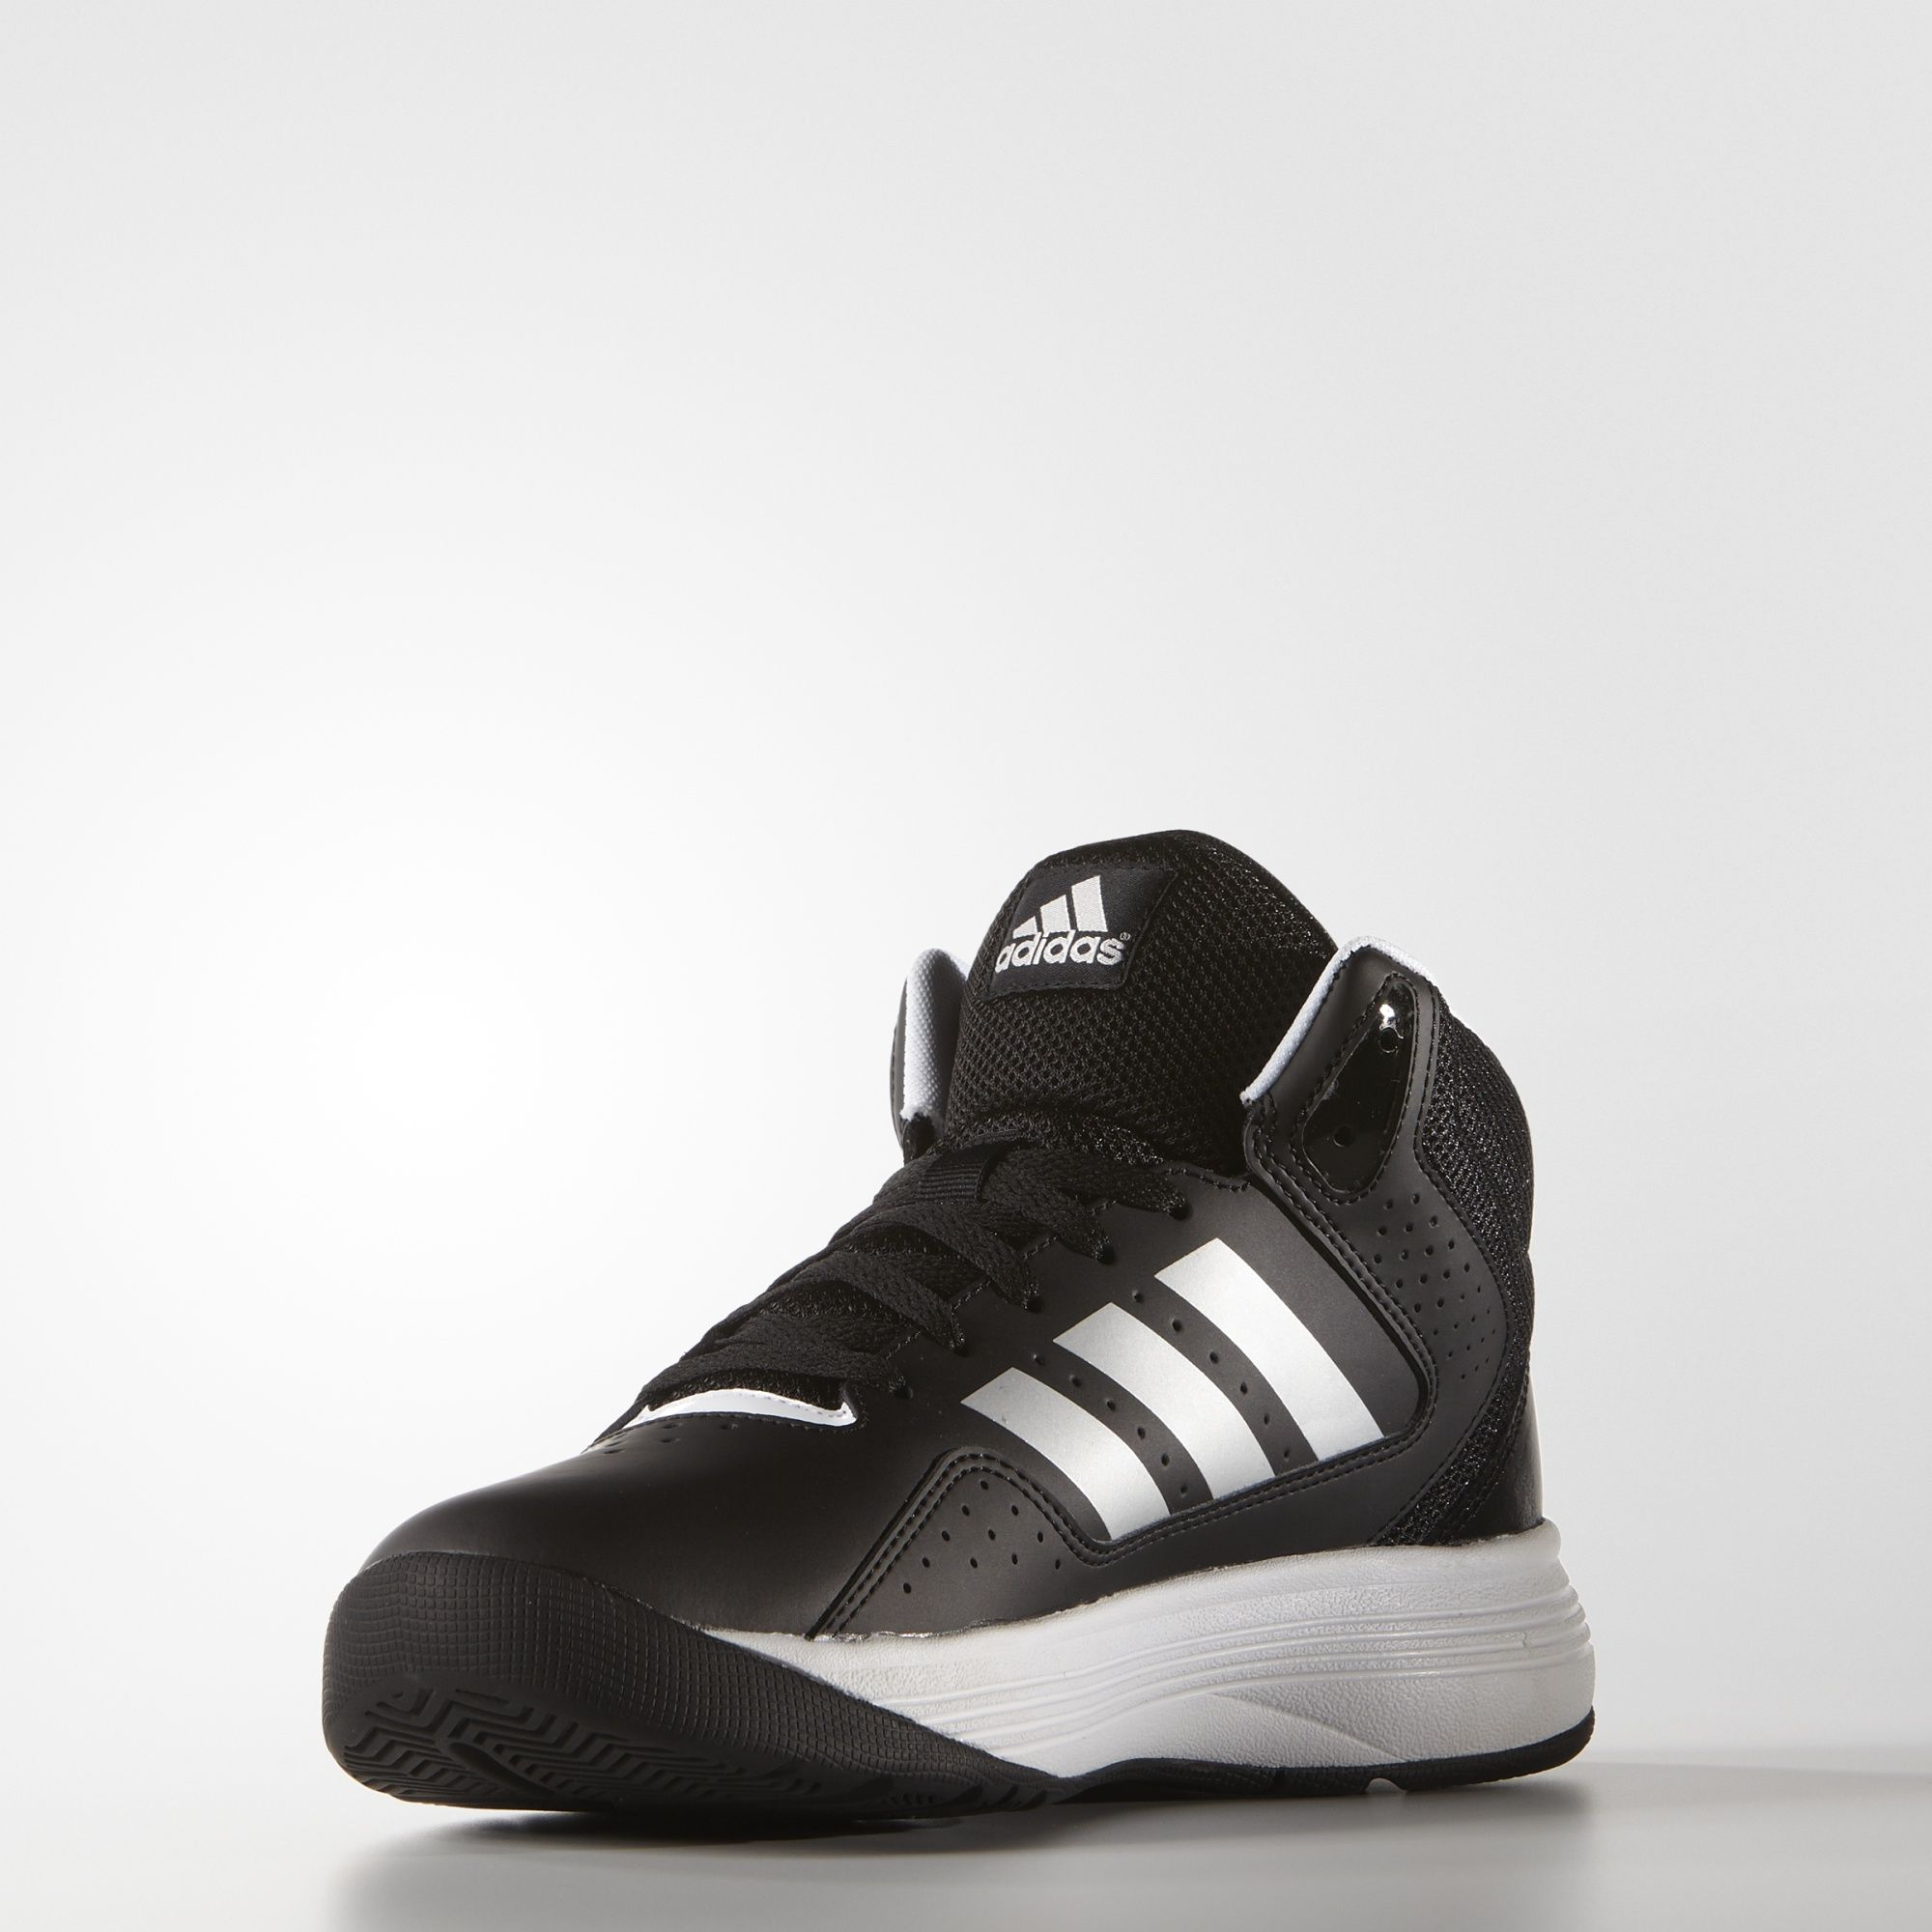 Adidas Cloudfoam Mid Basketball Shoes